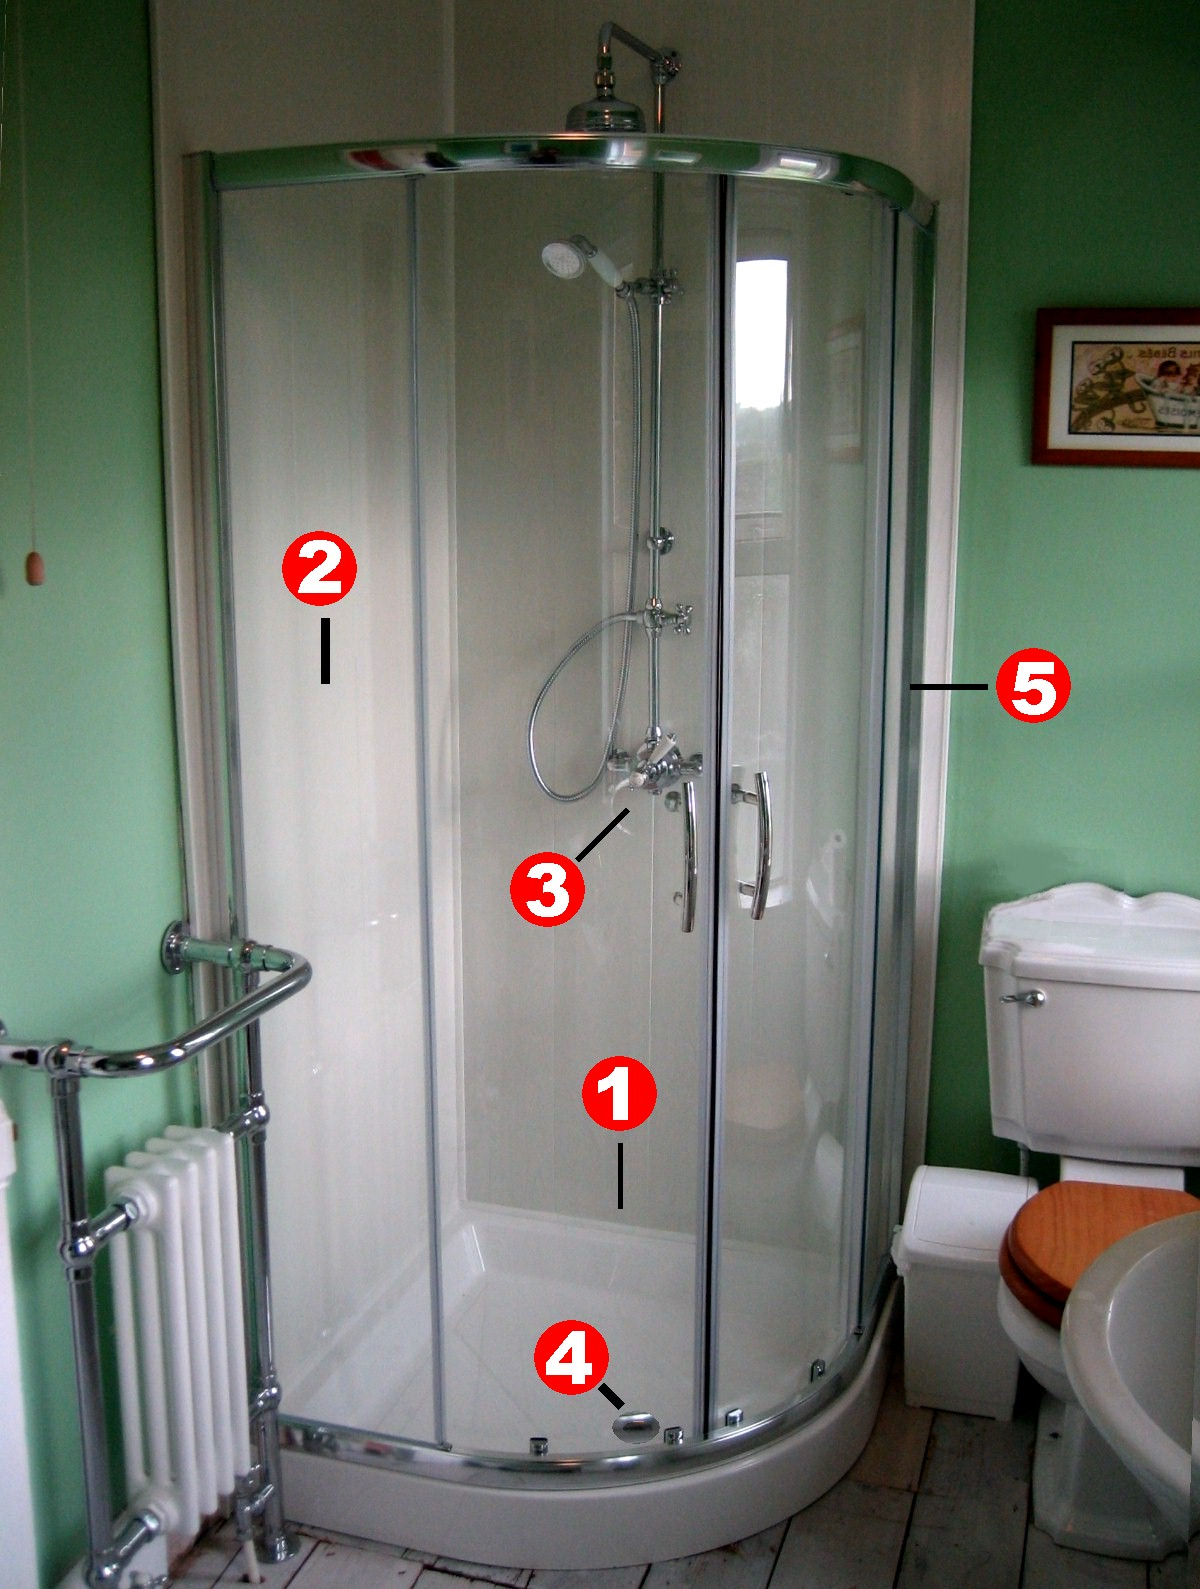 leaking shower - Leaking Shower - Causes And Solutions